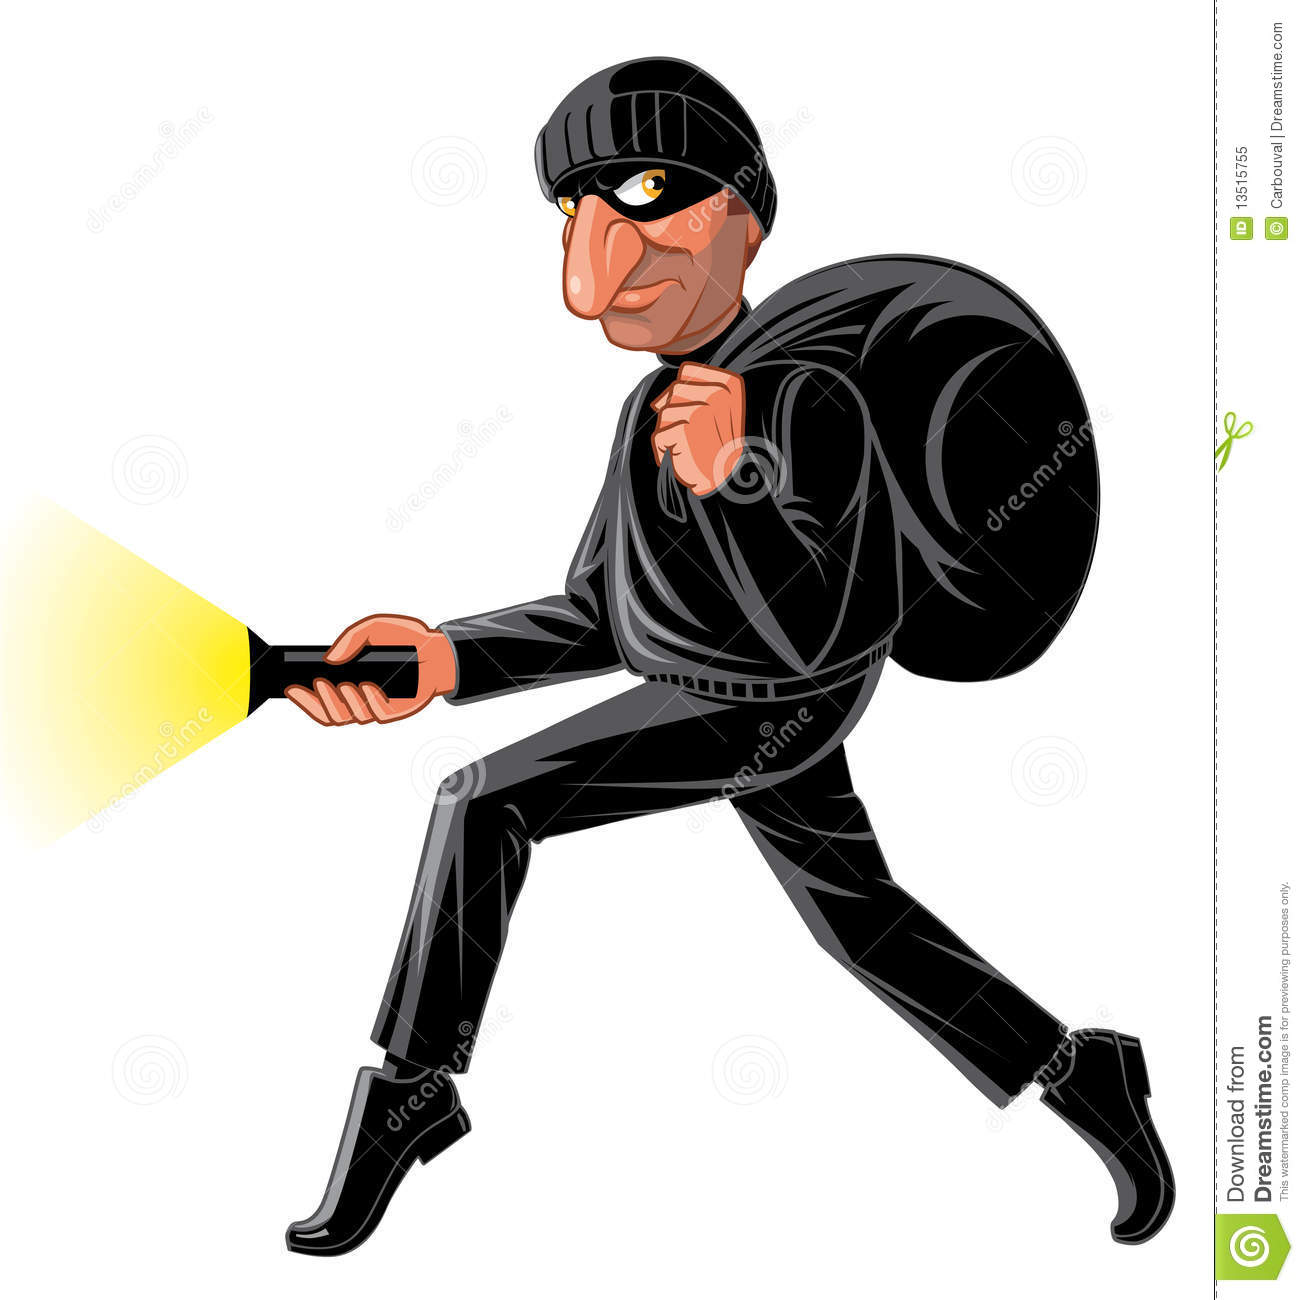 Stealthy Thief Royalty Free Stock Photo Image 13515755